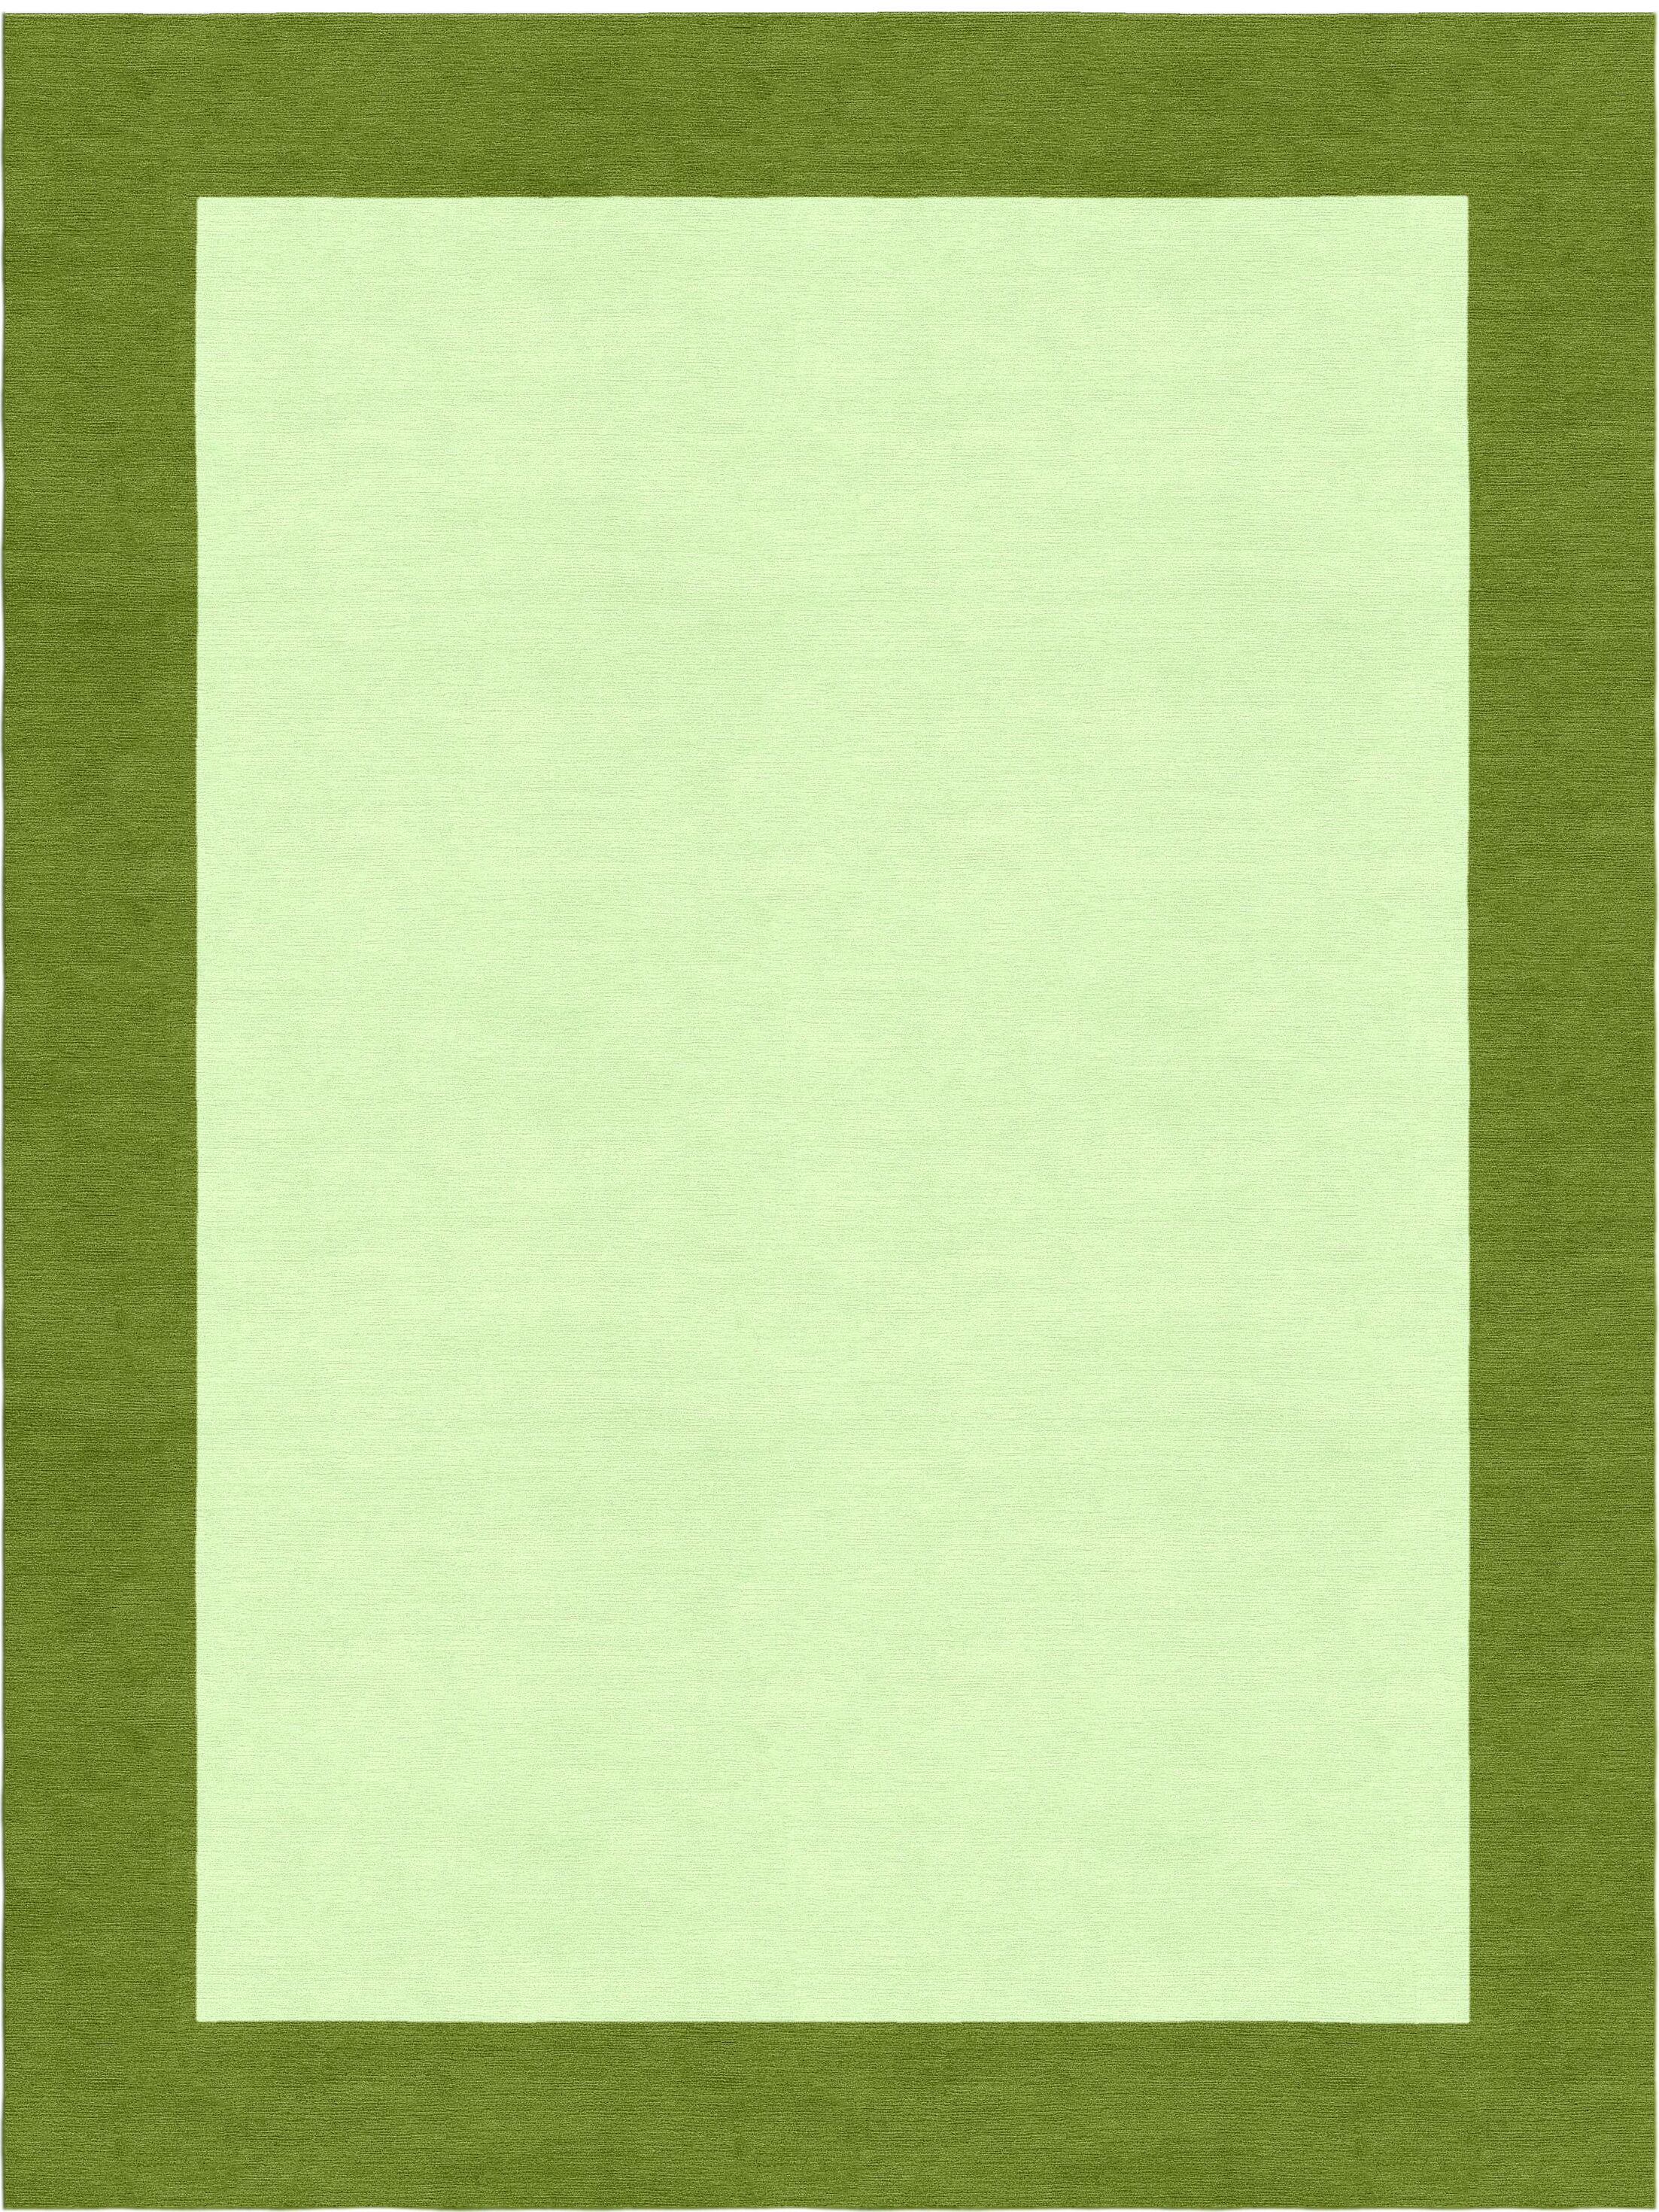 Godsey Hand-Tufted Wool Light Green Area Rug Rug Size: Rectangle 6' x 9'